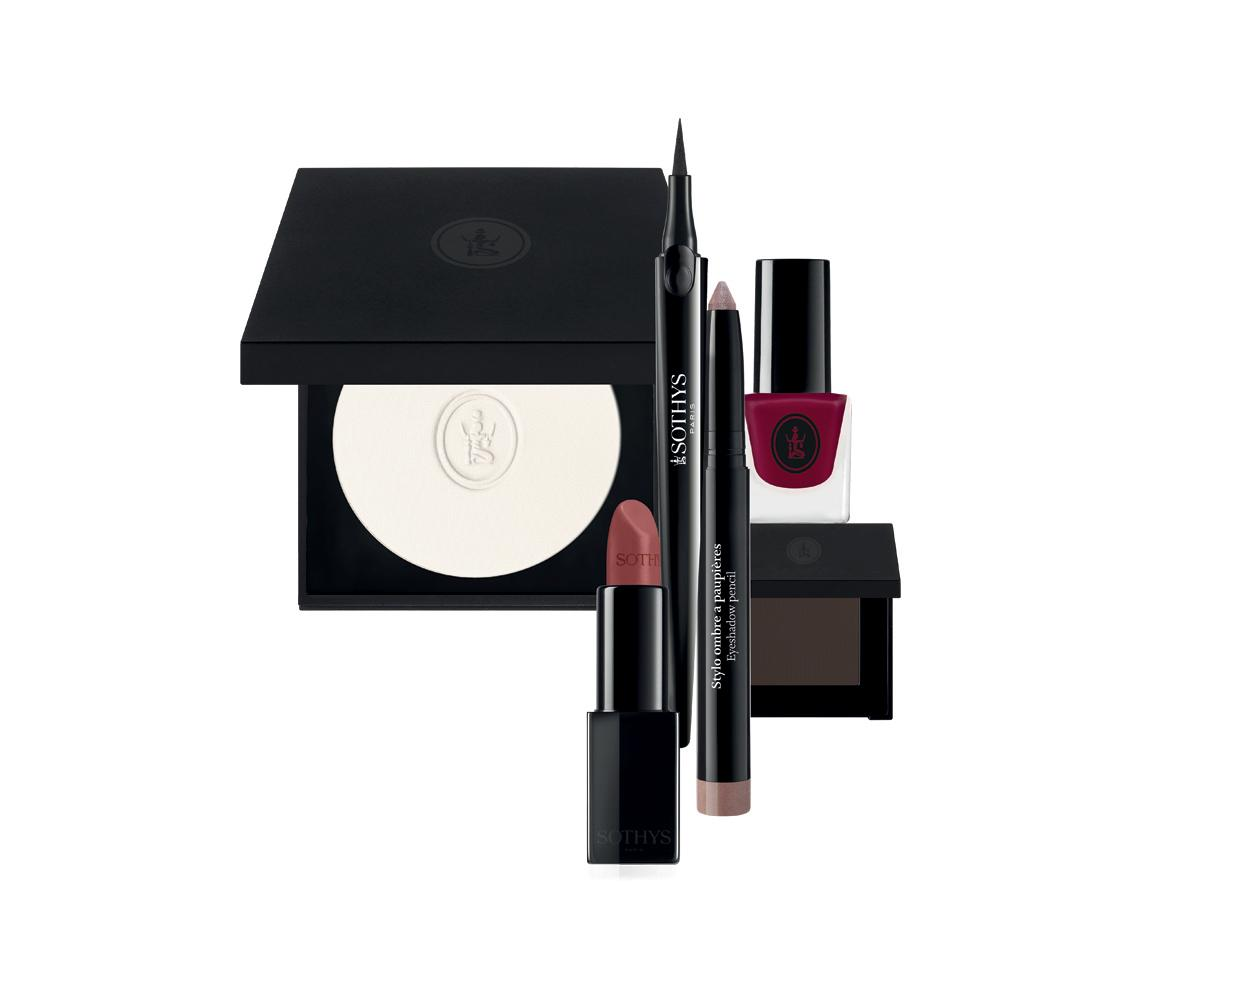 Sothys has launched a make up collection inspired by the city of Paris